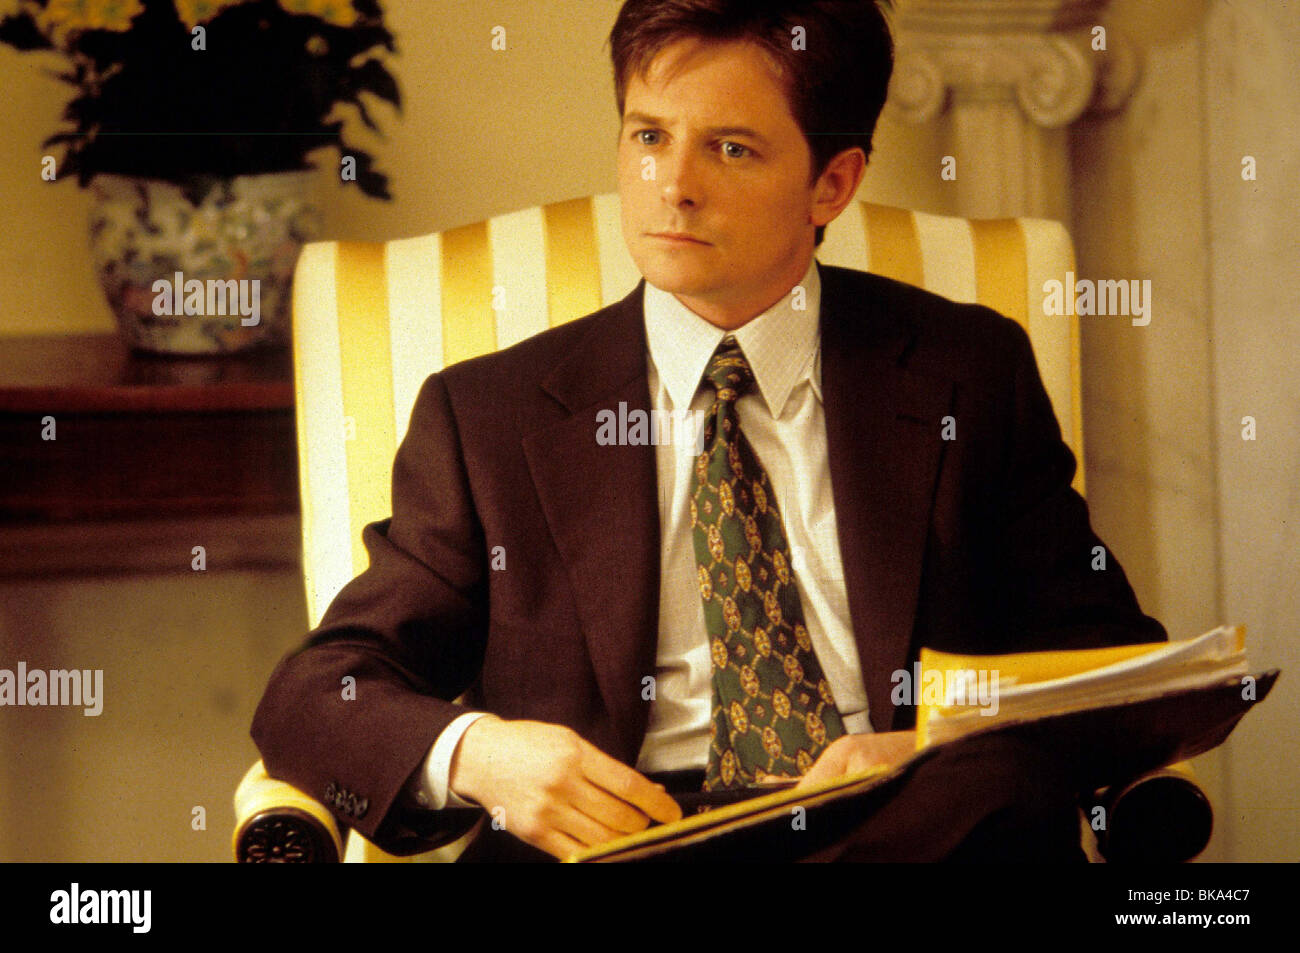 THE AMERICAN PRESIDENT (1995) MICHAEL J FOX AMPR 003 - Stock Image